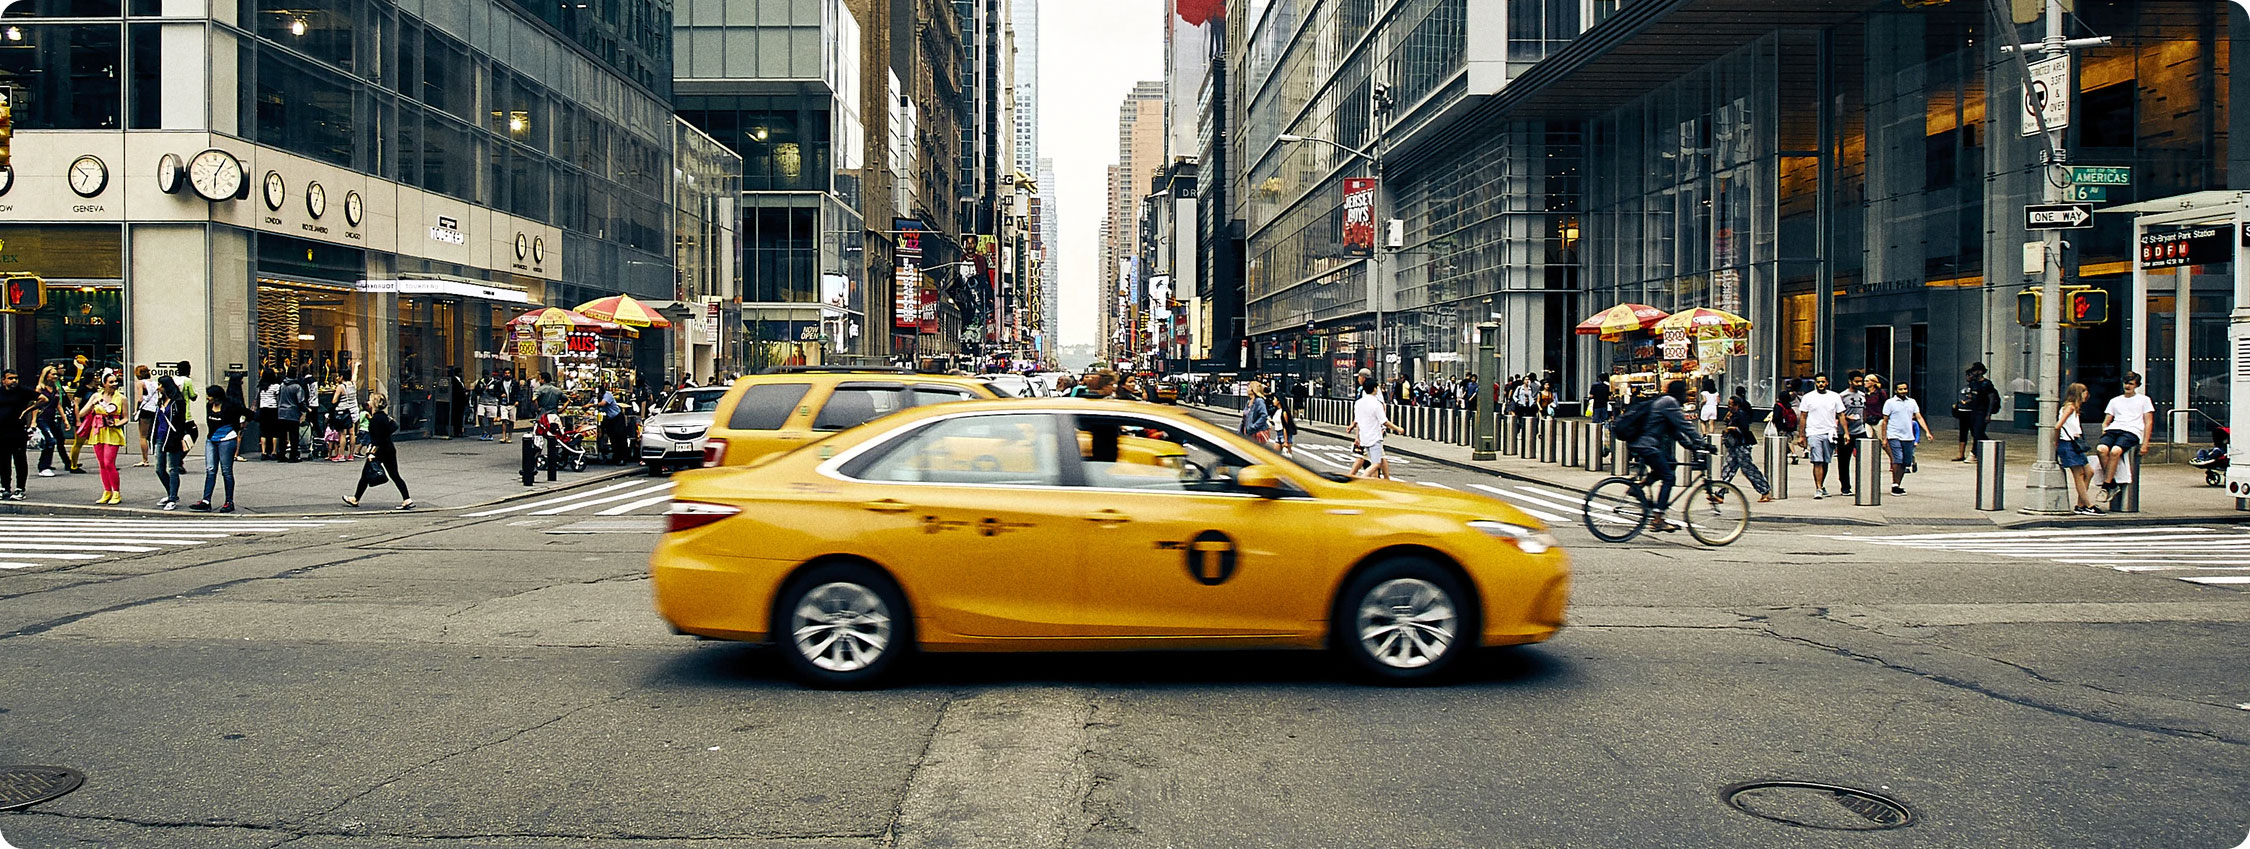 avada-taxi-pricing-image-01